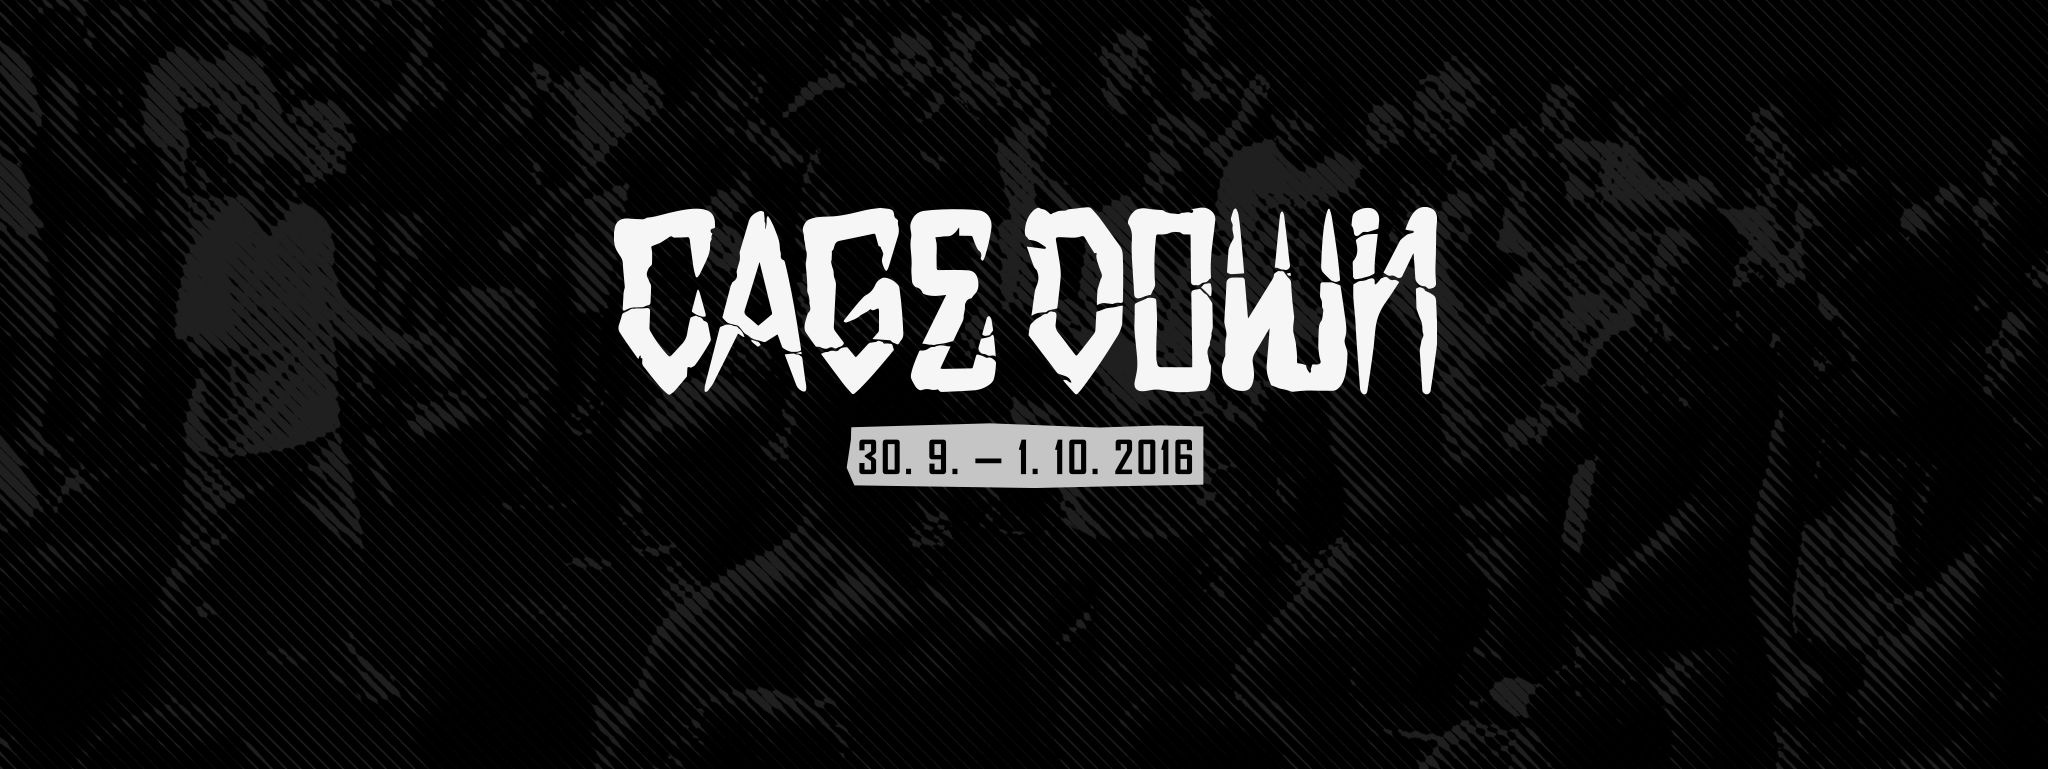 CAGE DOWN 2016 - Championship of Hardcore [Liberec]